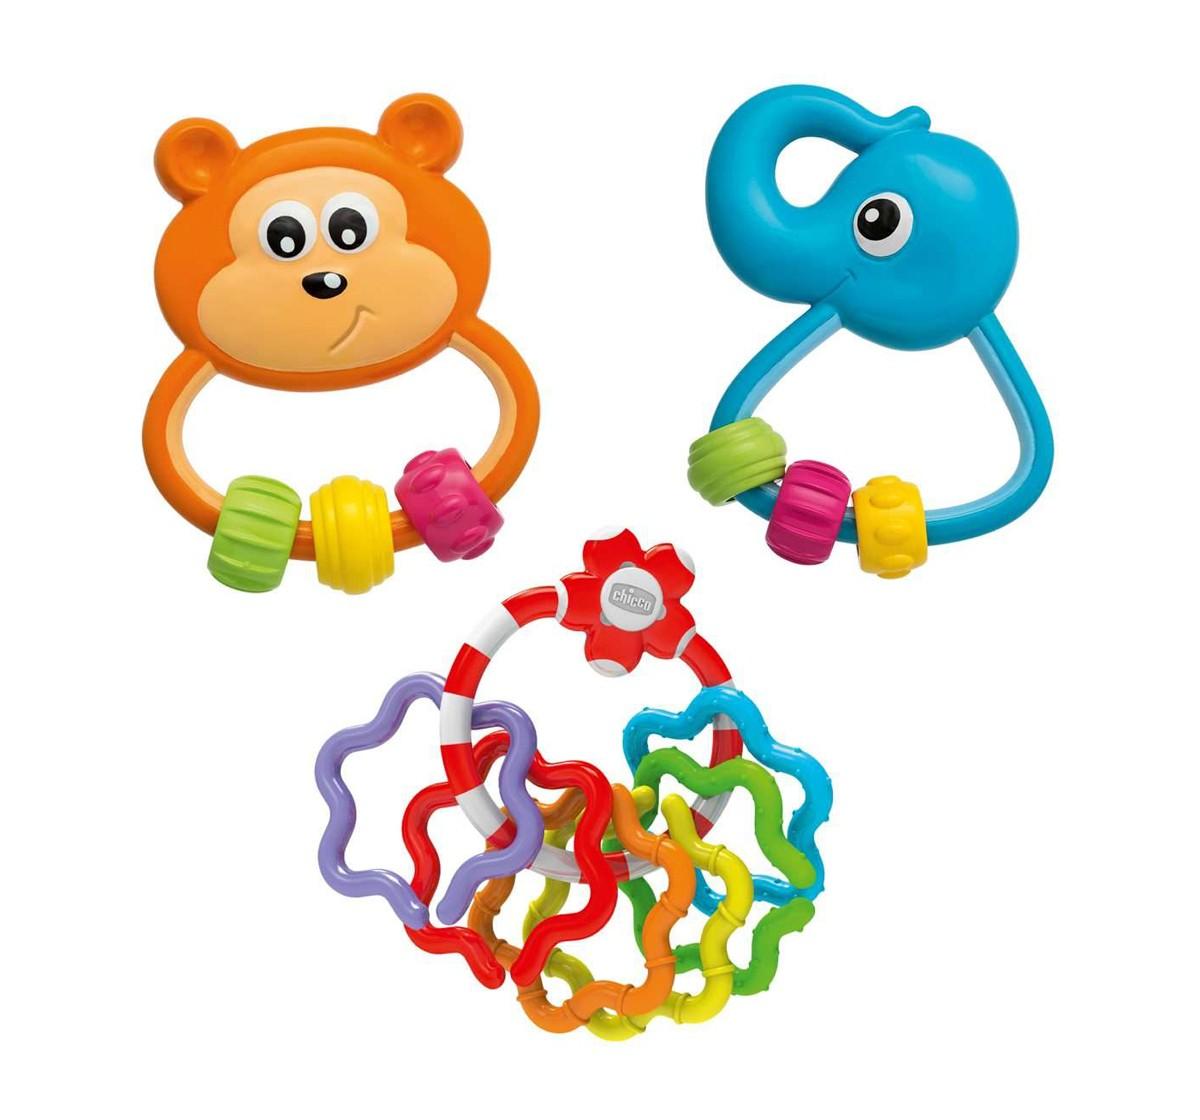 Chicco Play Set of Teethers & Rattles for Kids age 3M+